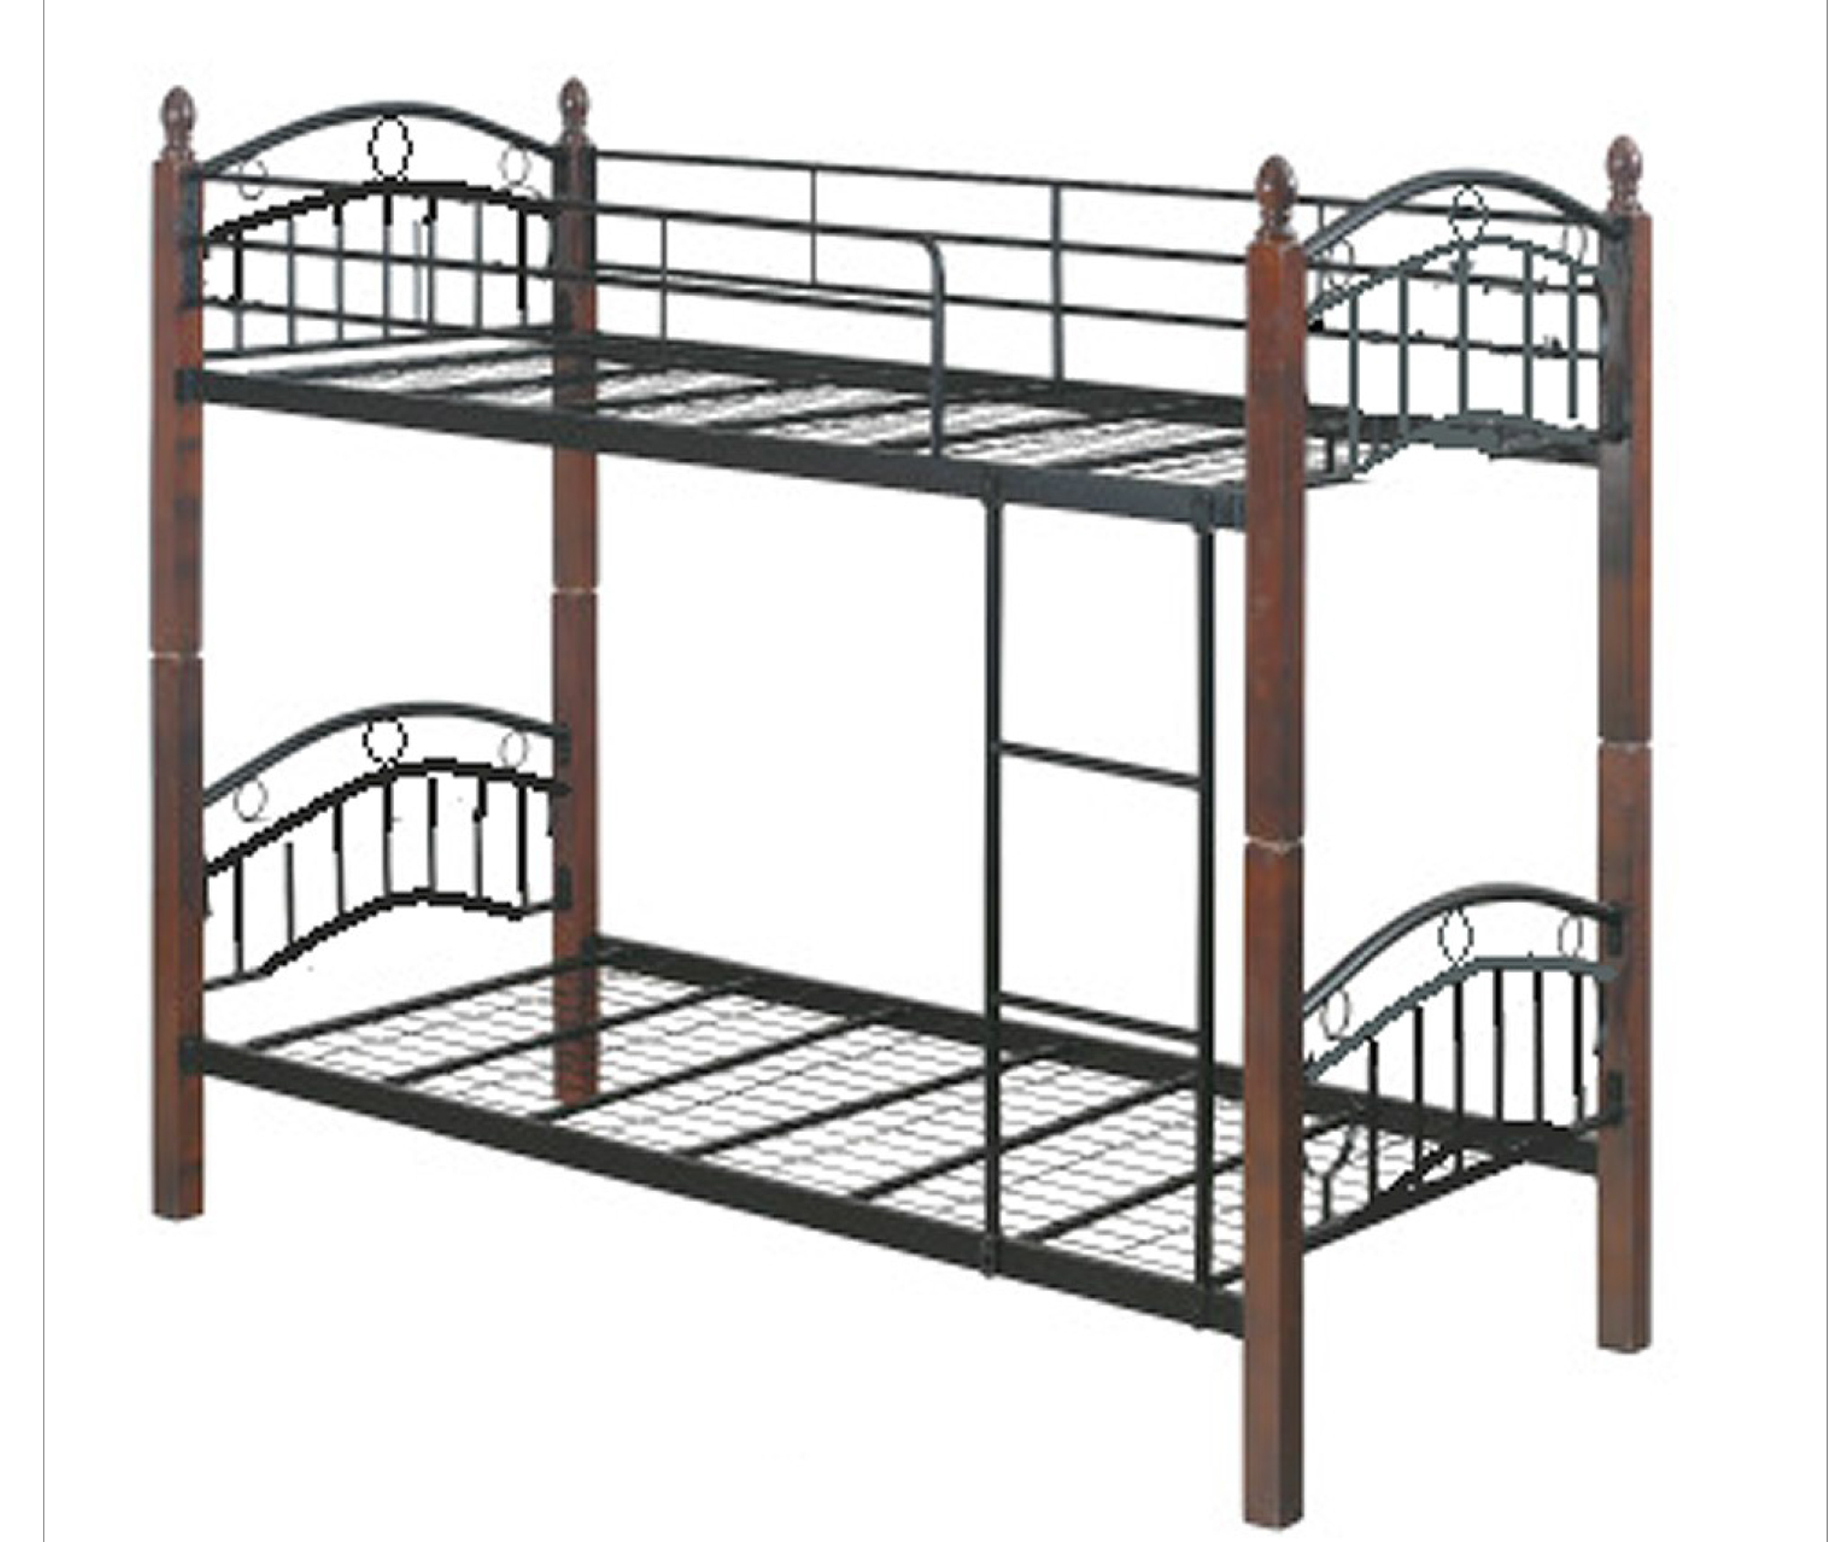 Steel double deck bed - Dew Foam Double Deck Bed Frame With 4 X 36 X 75 Mattress Cebu Appliance Center